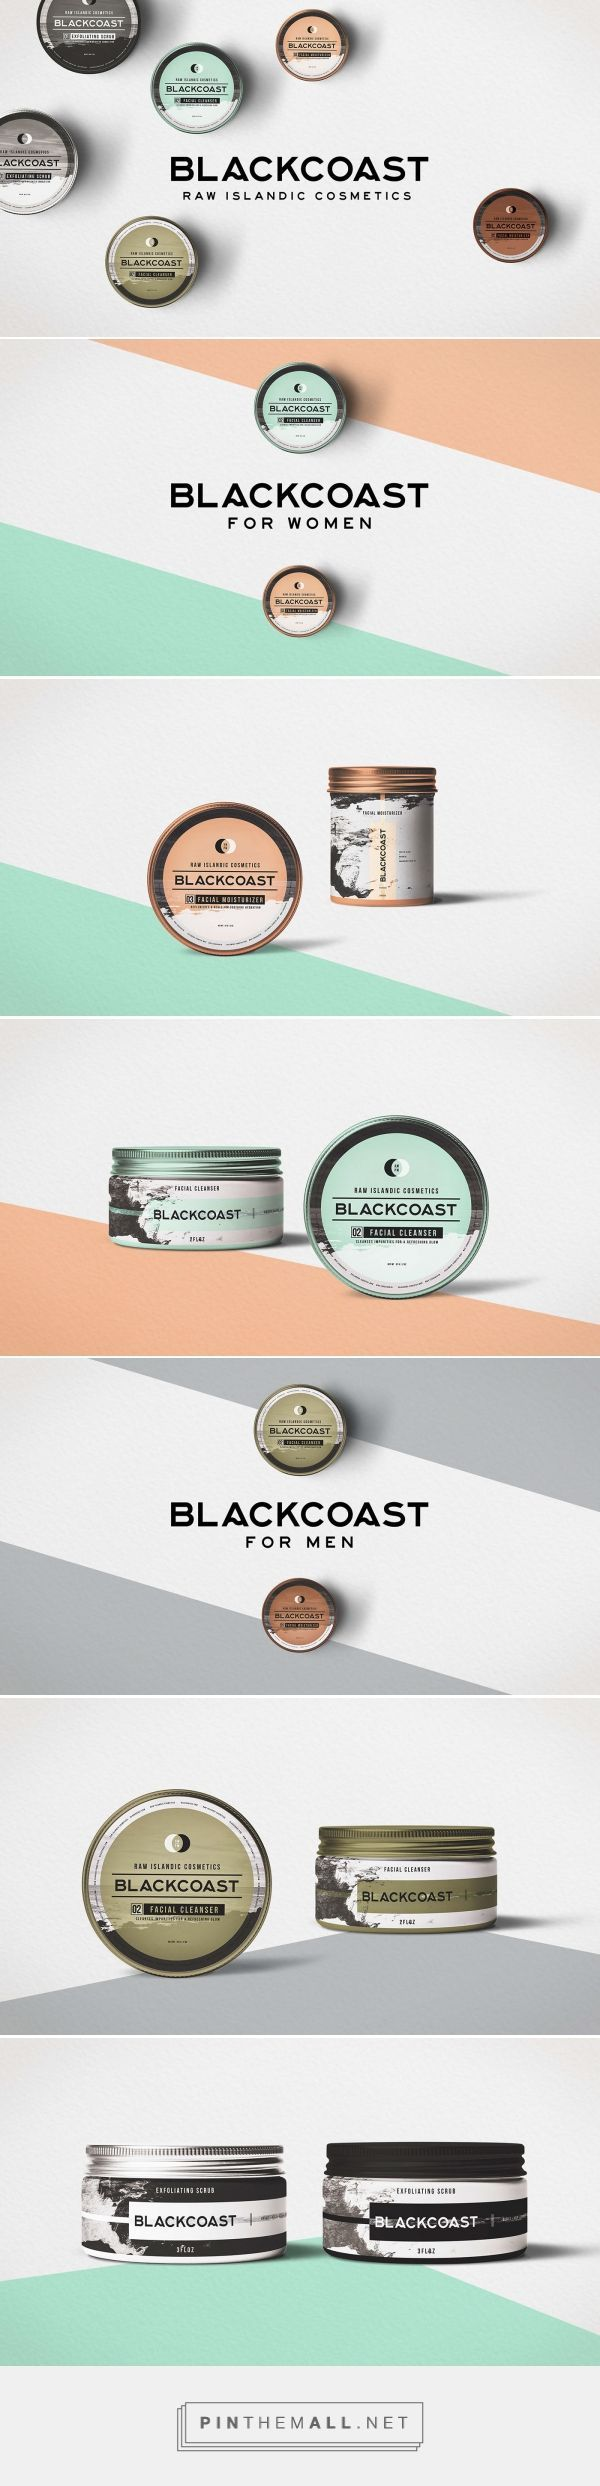 Branding and packaging design for BLACKCOAST // Spring 2016 on Behance by Wyatt Lampley Nashville, TN curated by Packaging Diva PD.